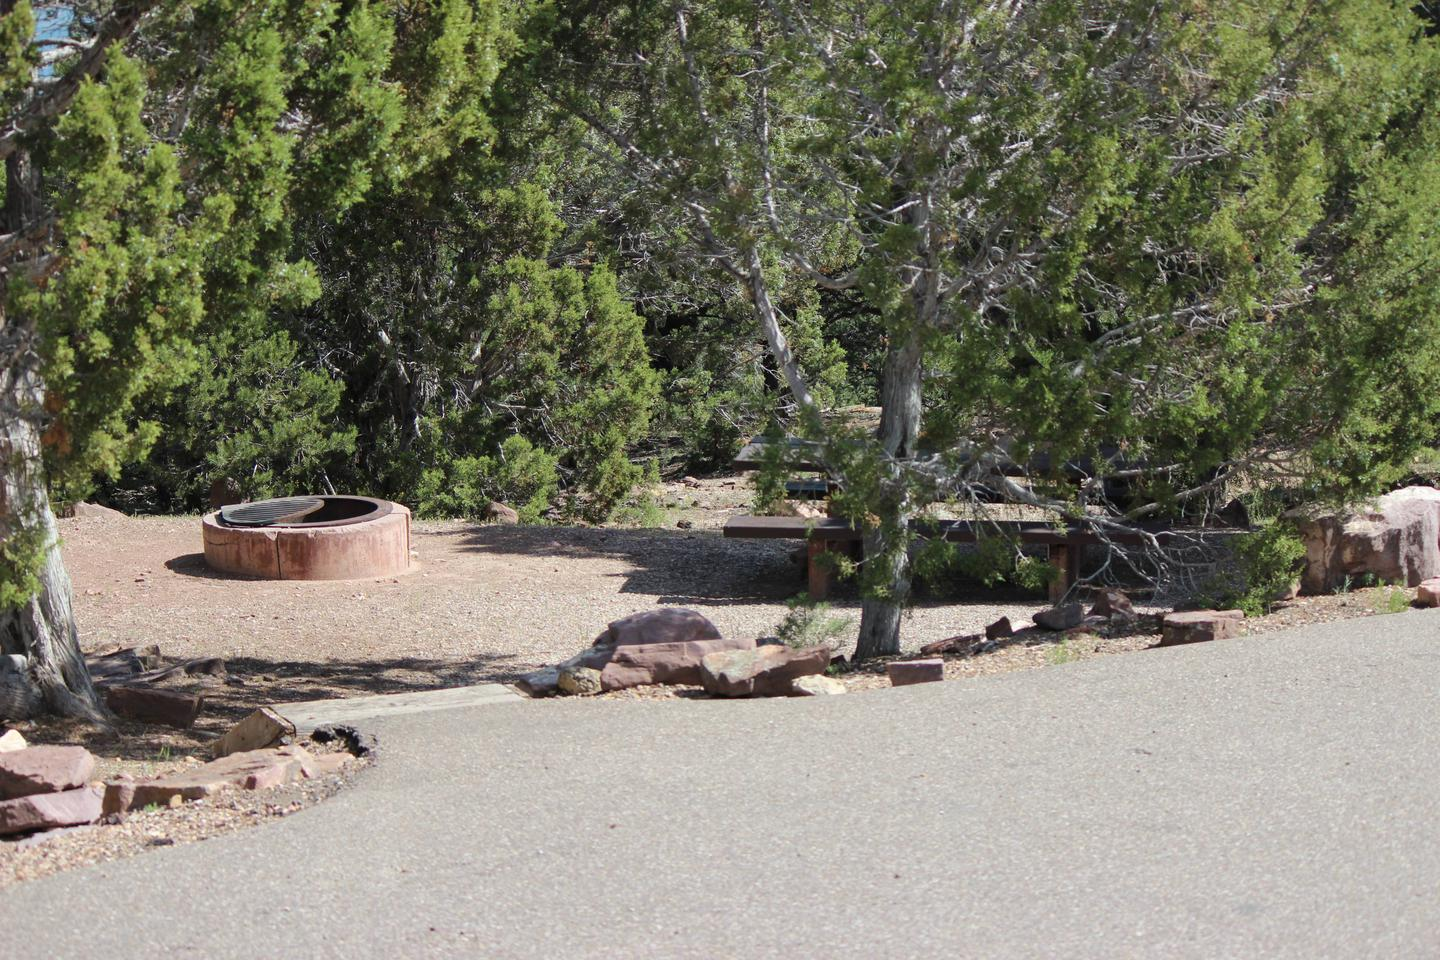 The picnic table and fire pit are located in a gravel area. There are steps going down to the picnic area from the parking area.Cedar Springs Campground: Site 9